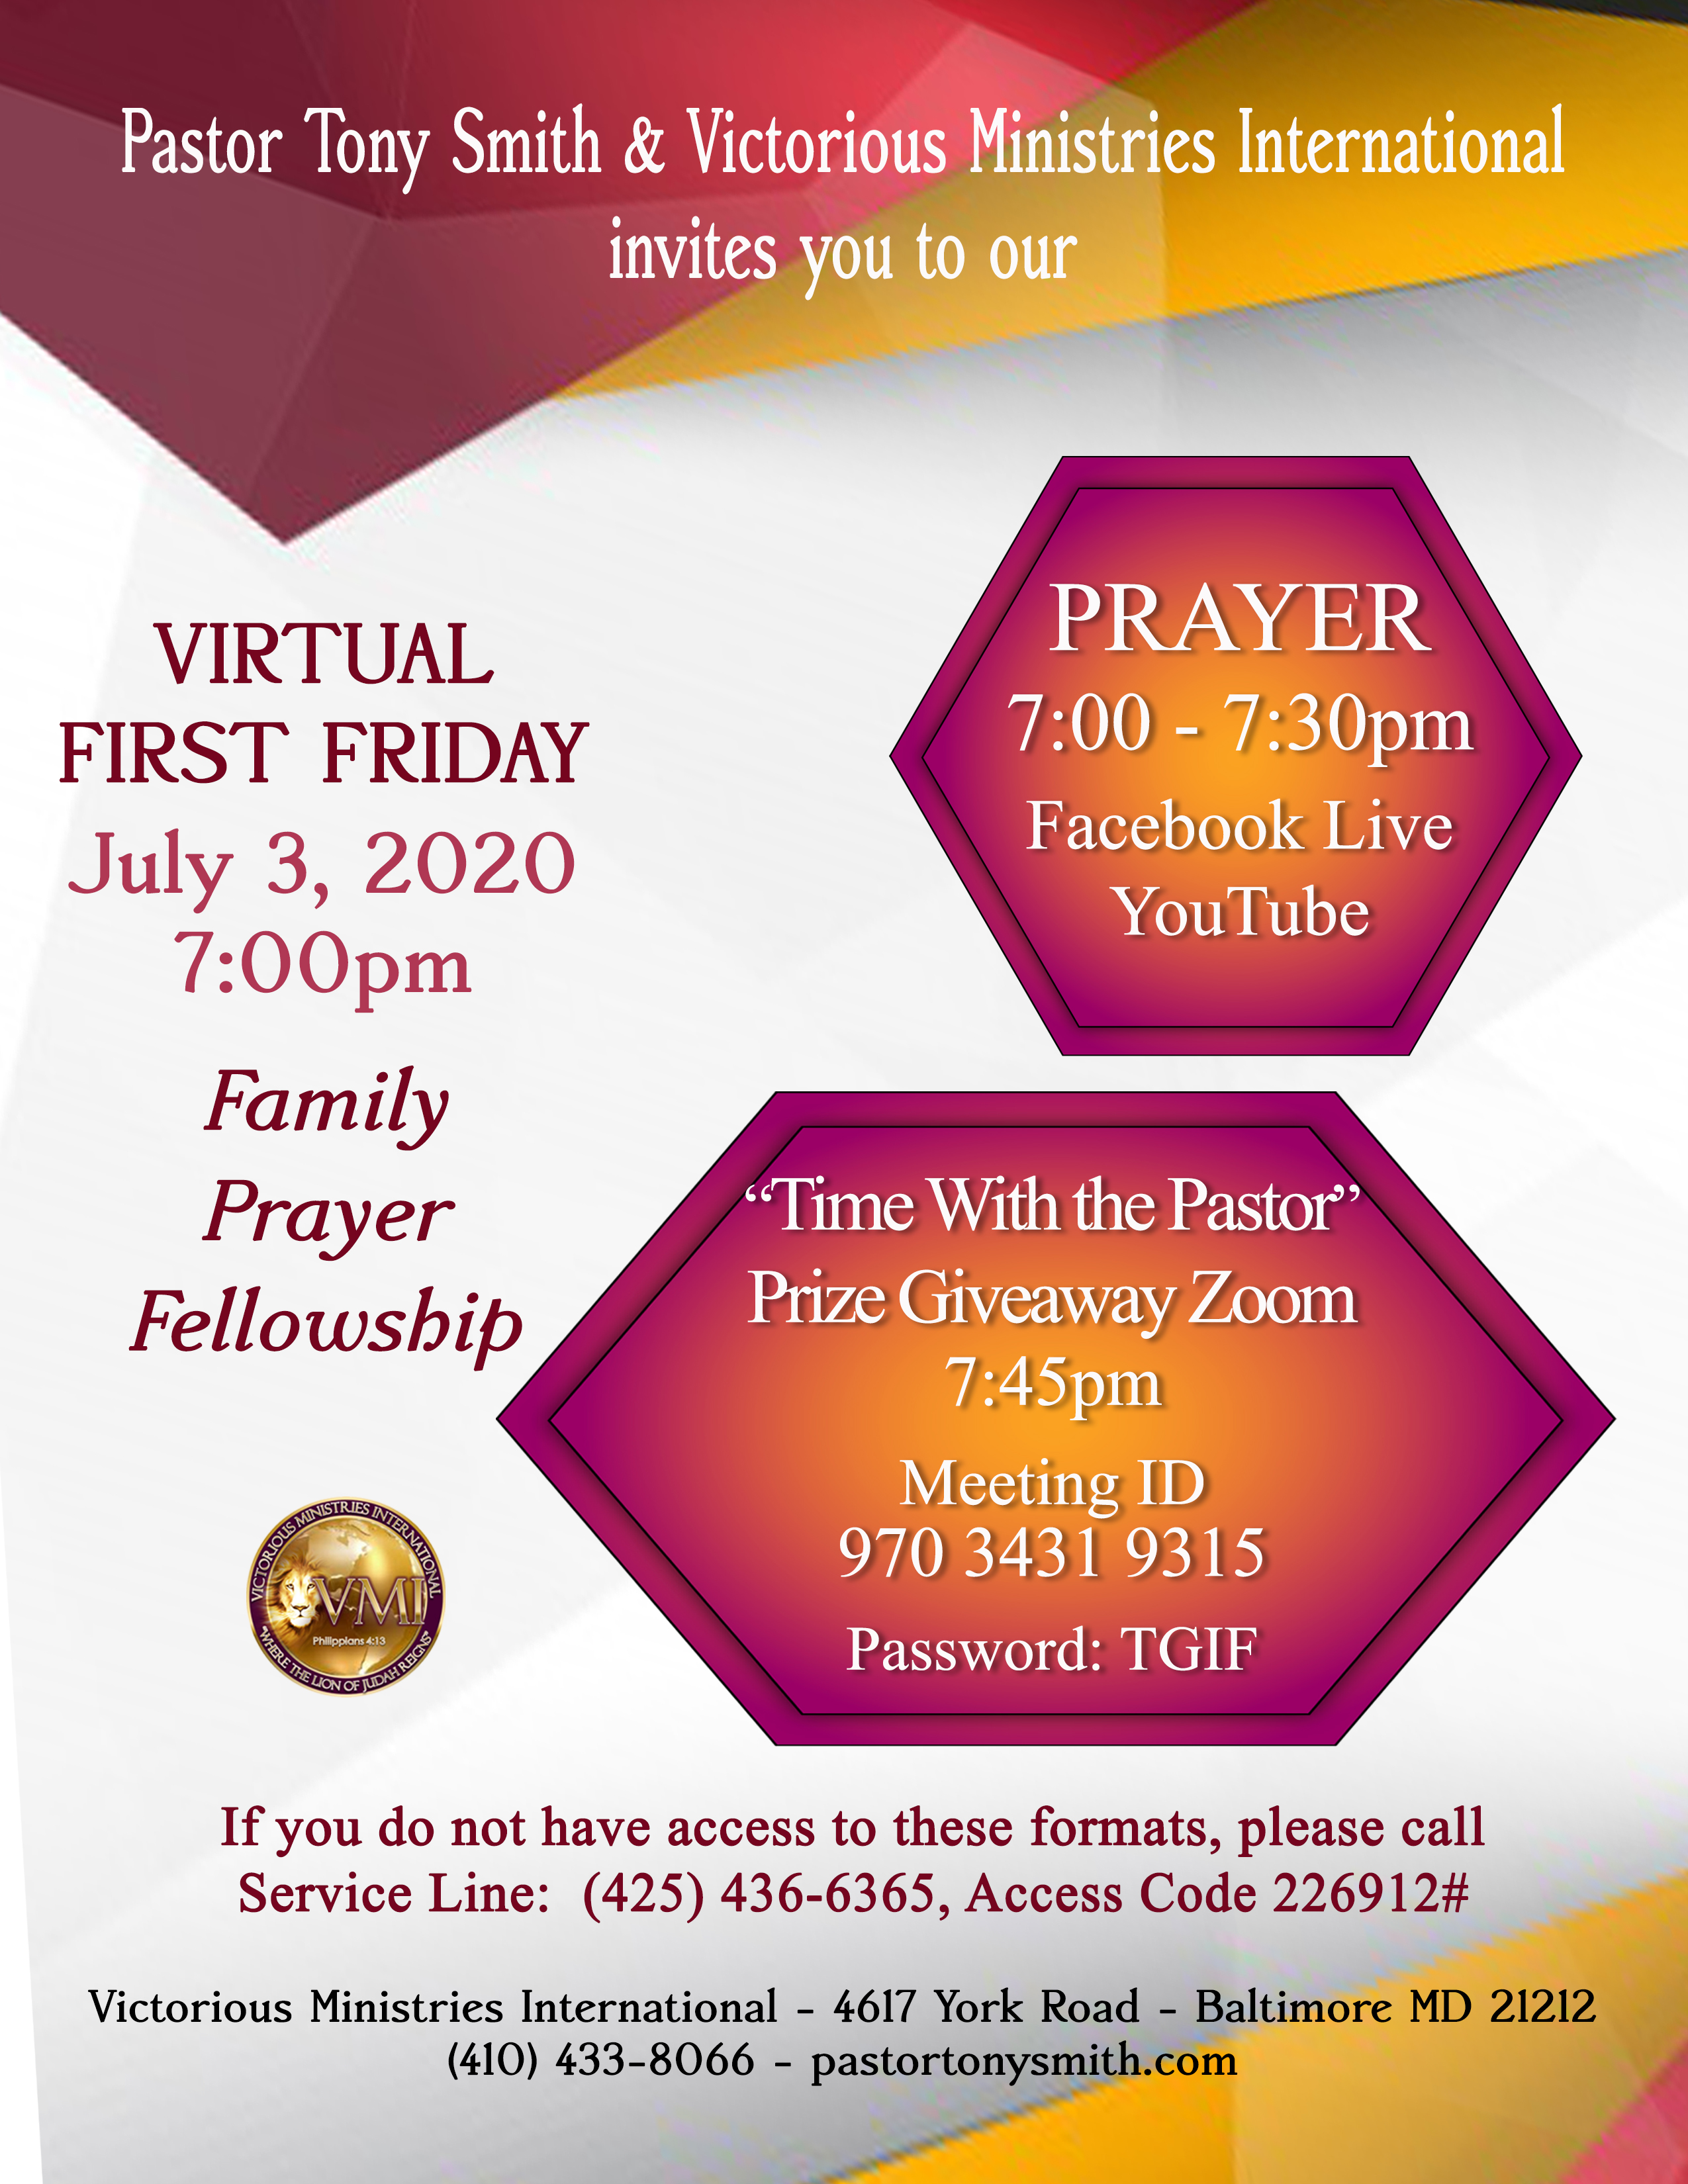 First Friday July 3